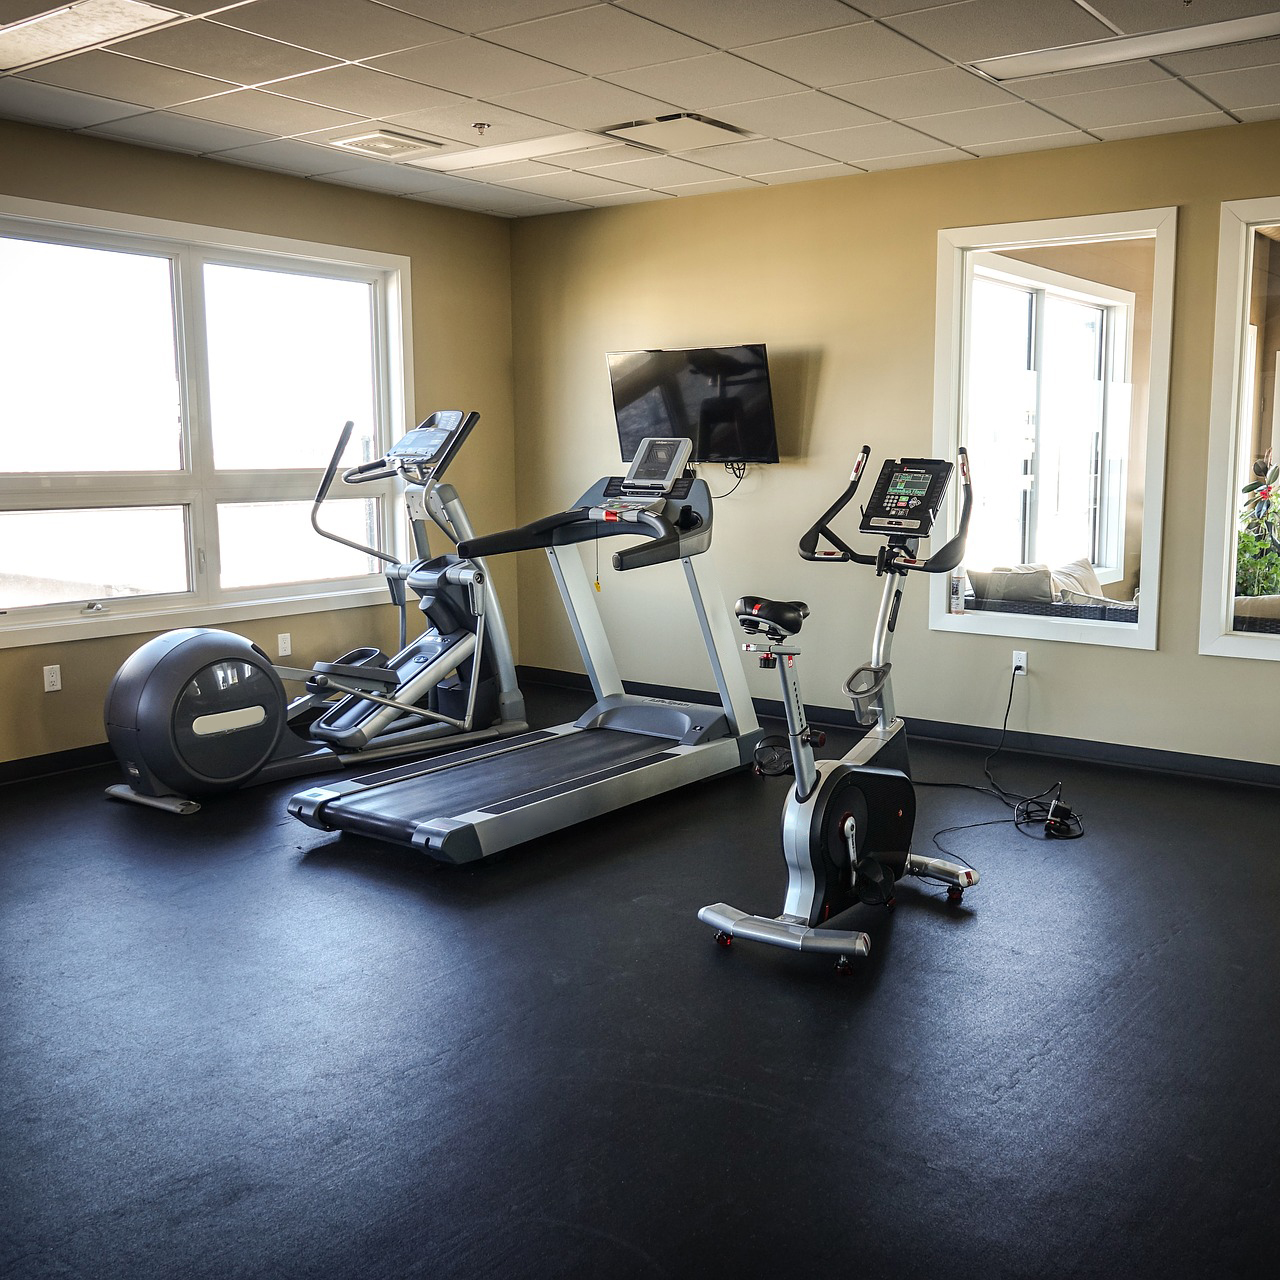 Sports fitness equipment